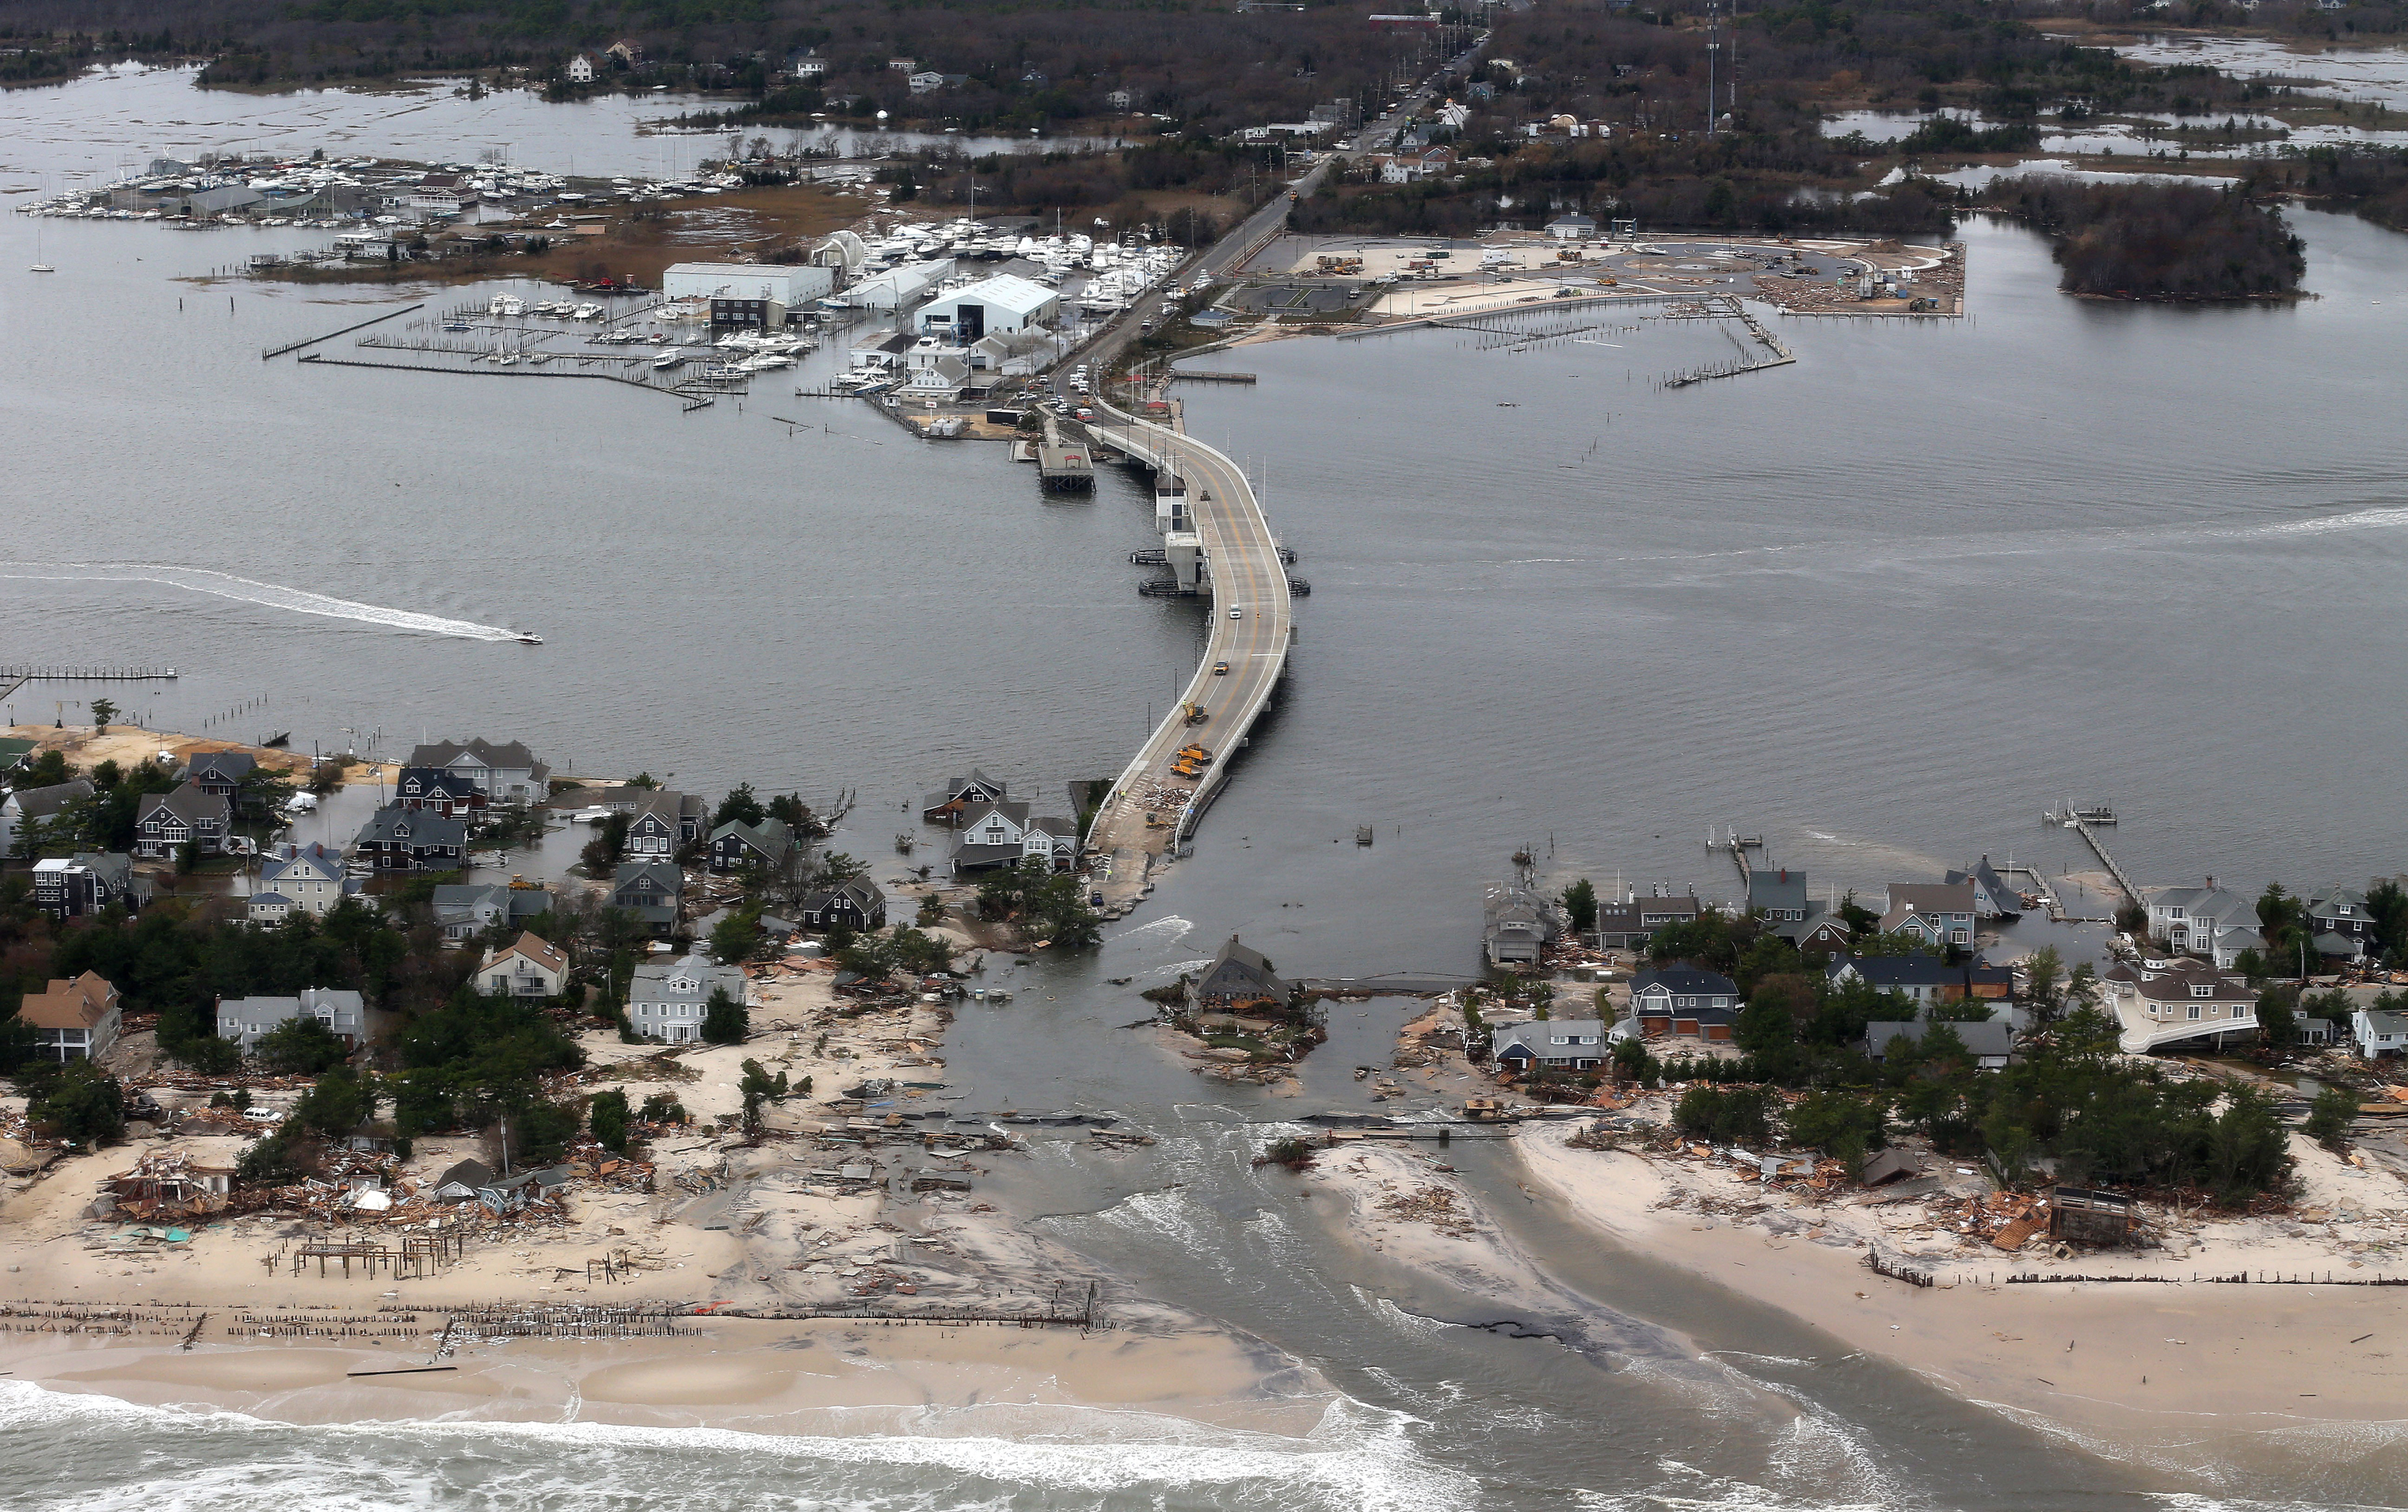 In 2012, the U.S. weather model's poor prediction of Hurricane Sandy's path led to massive devastation along the East Coast, seen here in Mantoloking, NJ, and served as  a wake-up call to American meteorologists